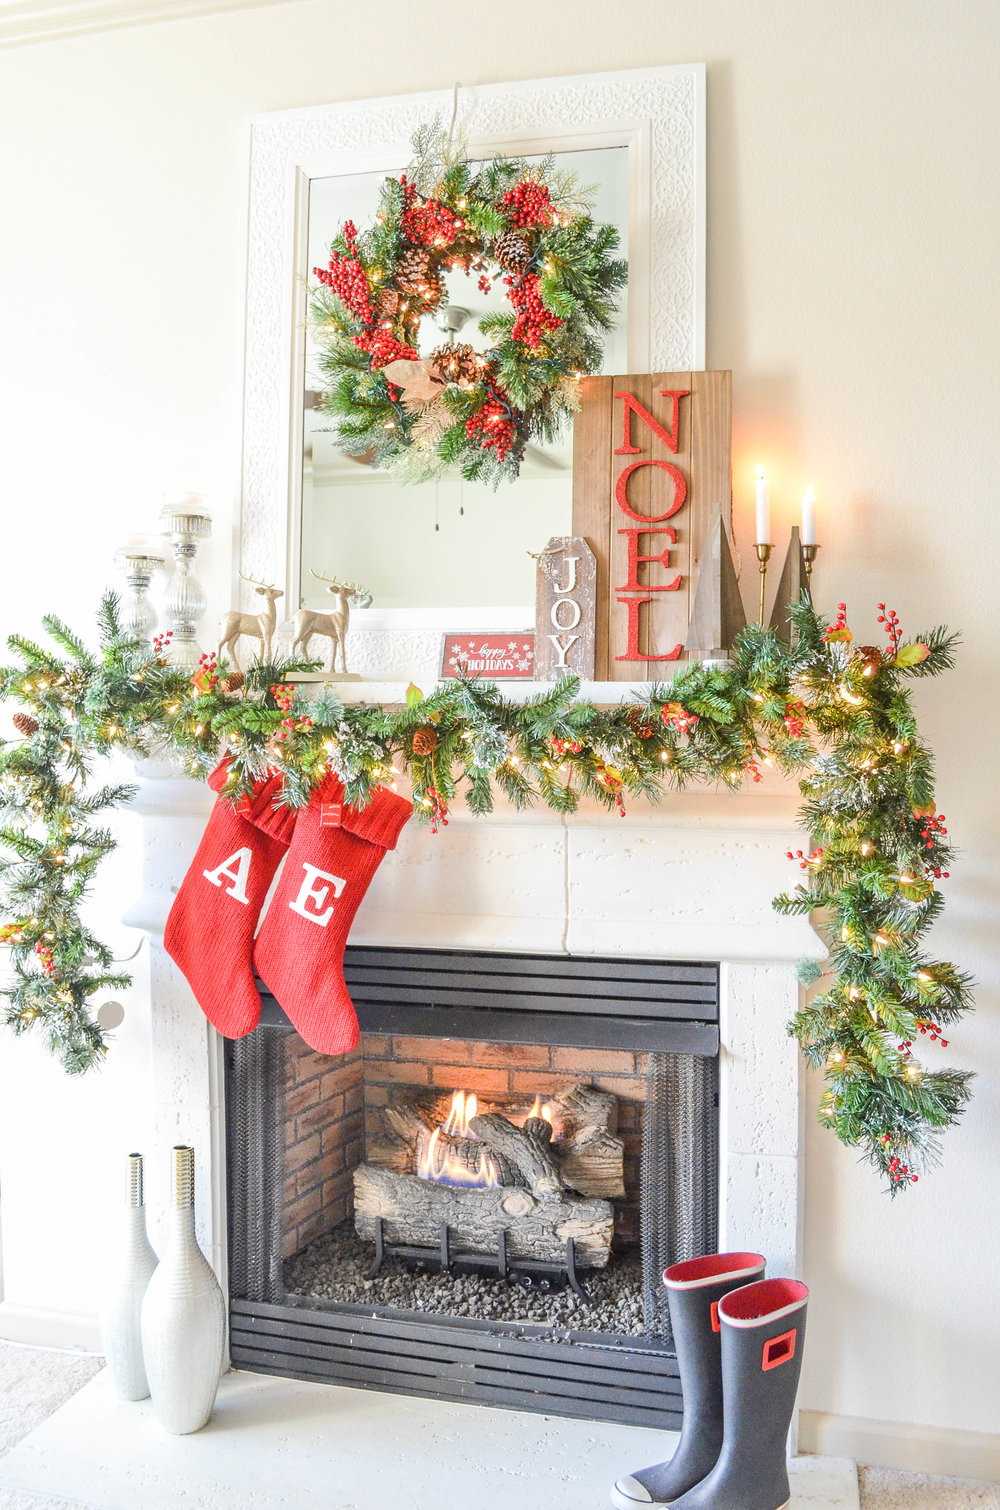 Christmas Mantel Decorating, Christmas Mantel Decor, Christmas Decorating Service, Holiday Decorating Service, Christmas Living Room Decor. Asha-Maia Design | Interiors + Events - Alexandria, VA 22302. Serving the Alexandria, VA, Washington, DC and surrounding areas. Christmas Decorating, Christmas Decorator, Holiday Decorator, Holiday Decorating, Interior Design, Interior Designer, Interior Decorator - Owner & Lead Designer Asha Maxey